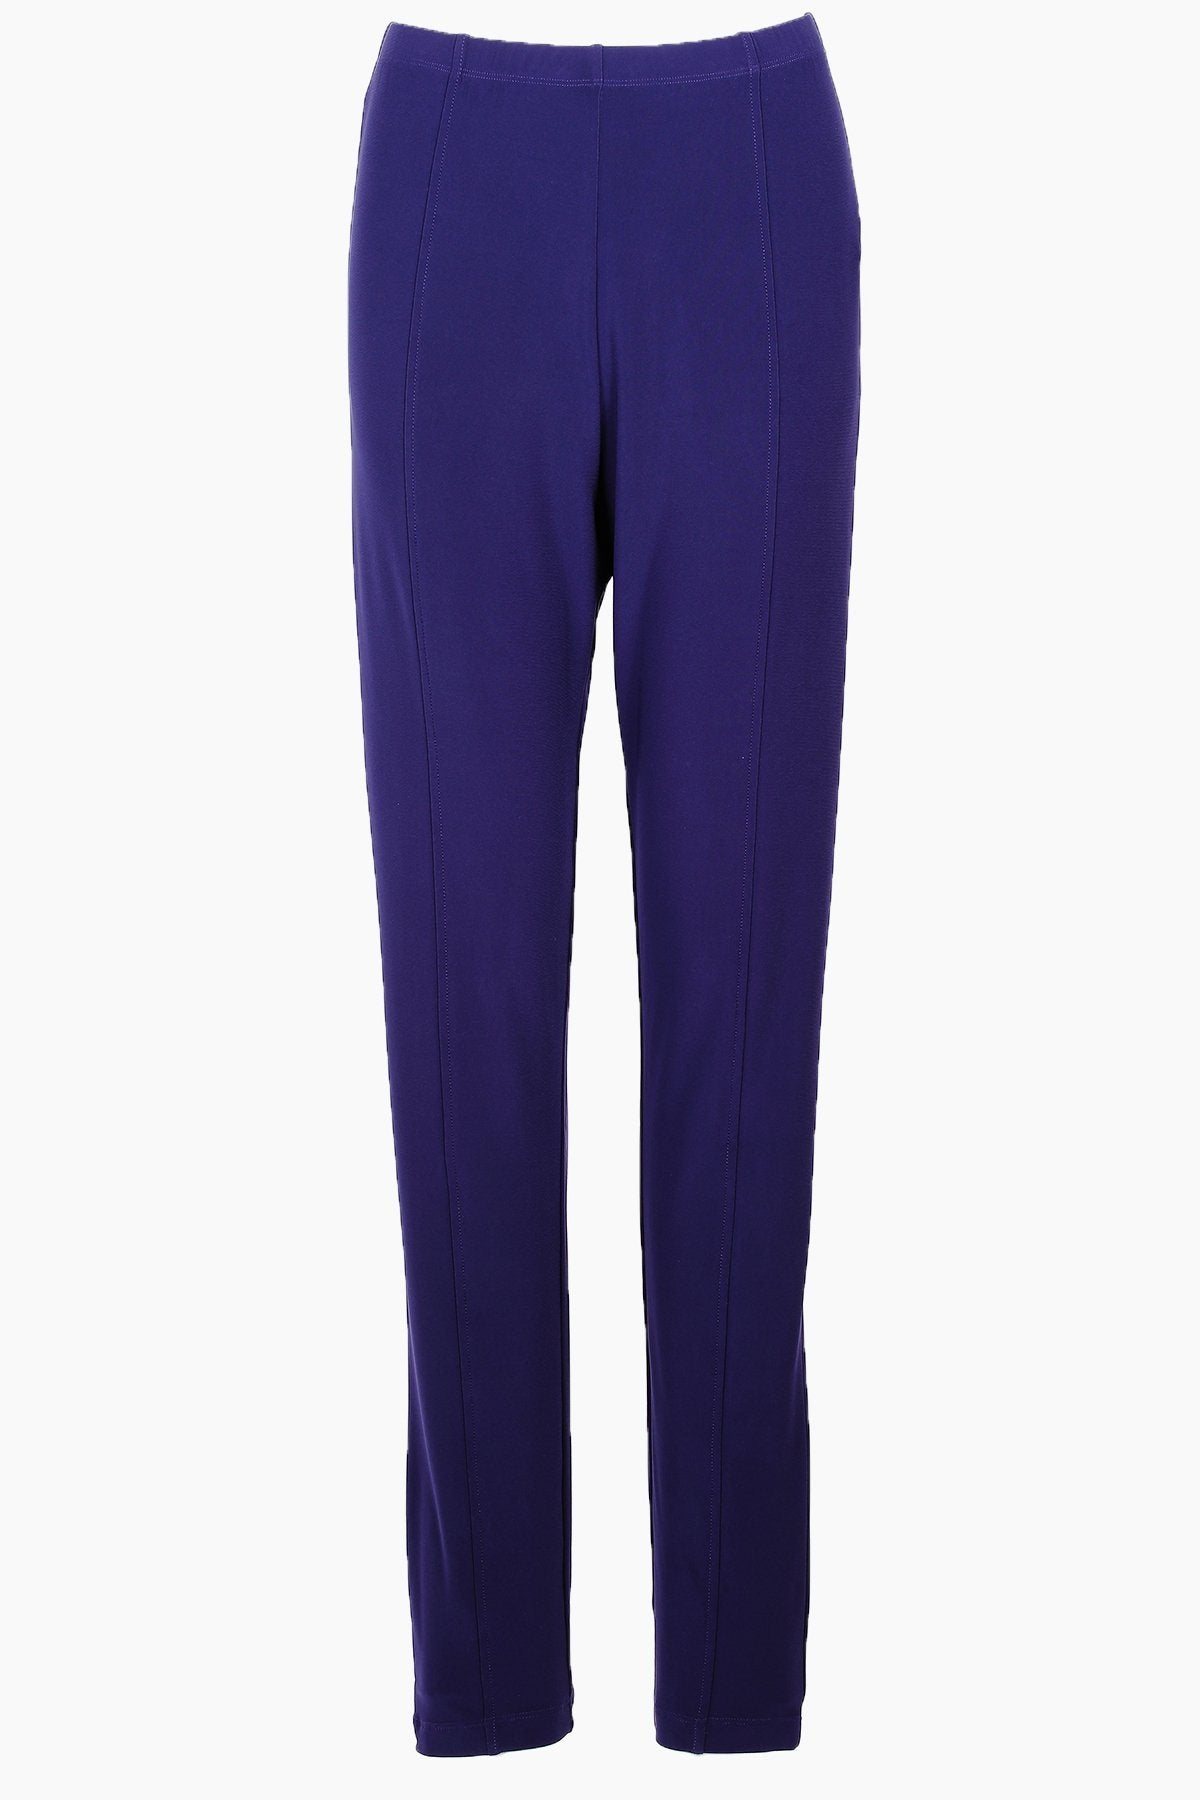 PLUS SIZE HIGH WAISTED TRAVEL PANTS NAVY